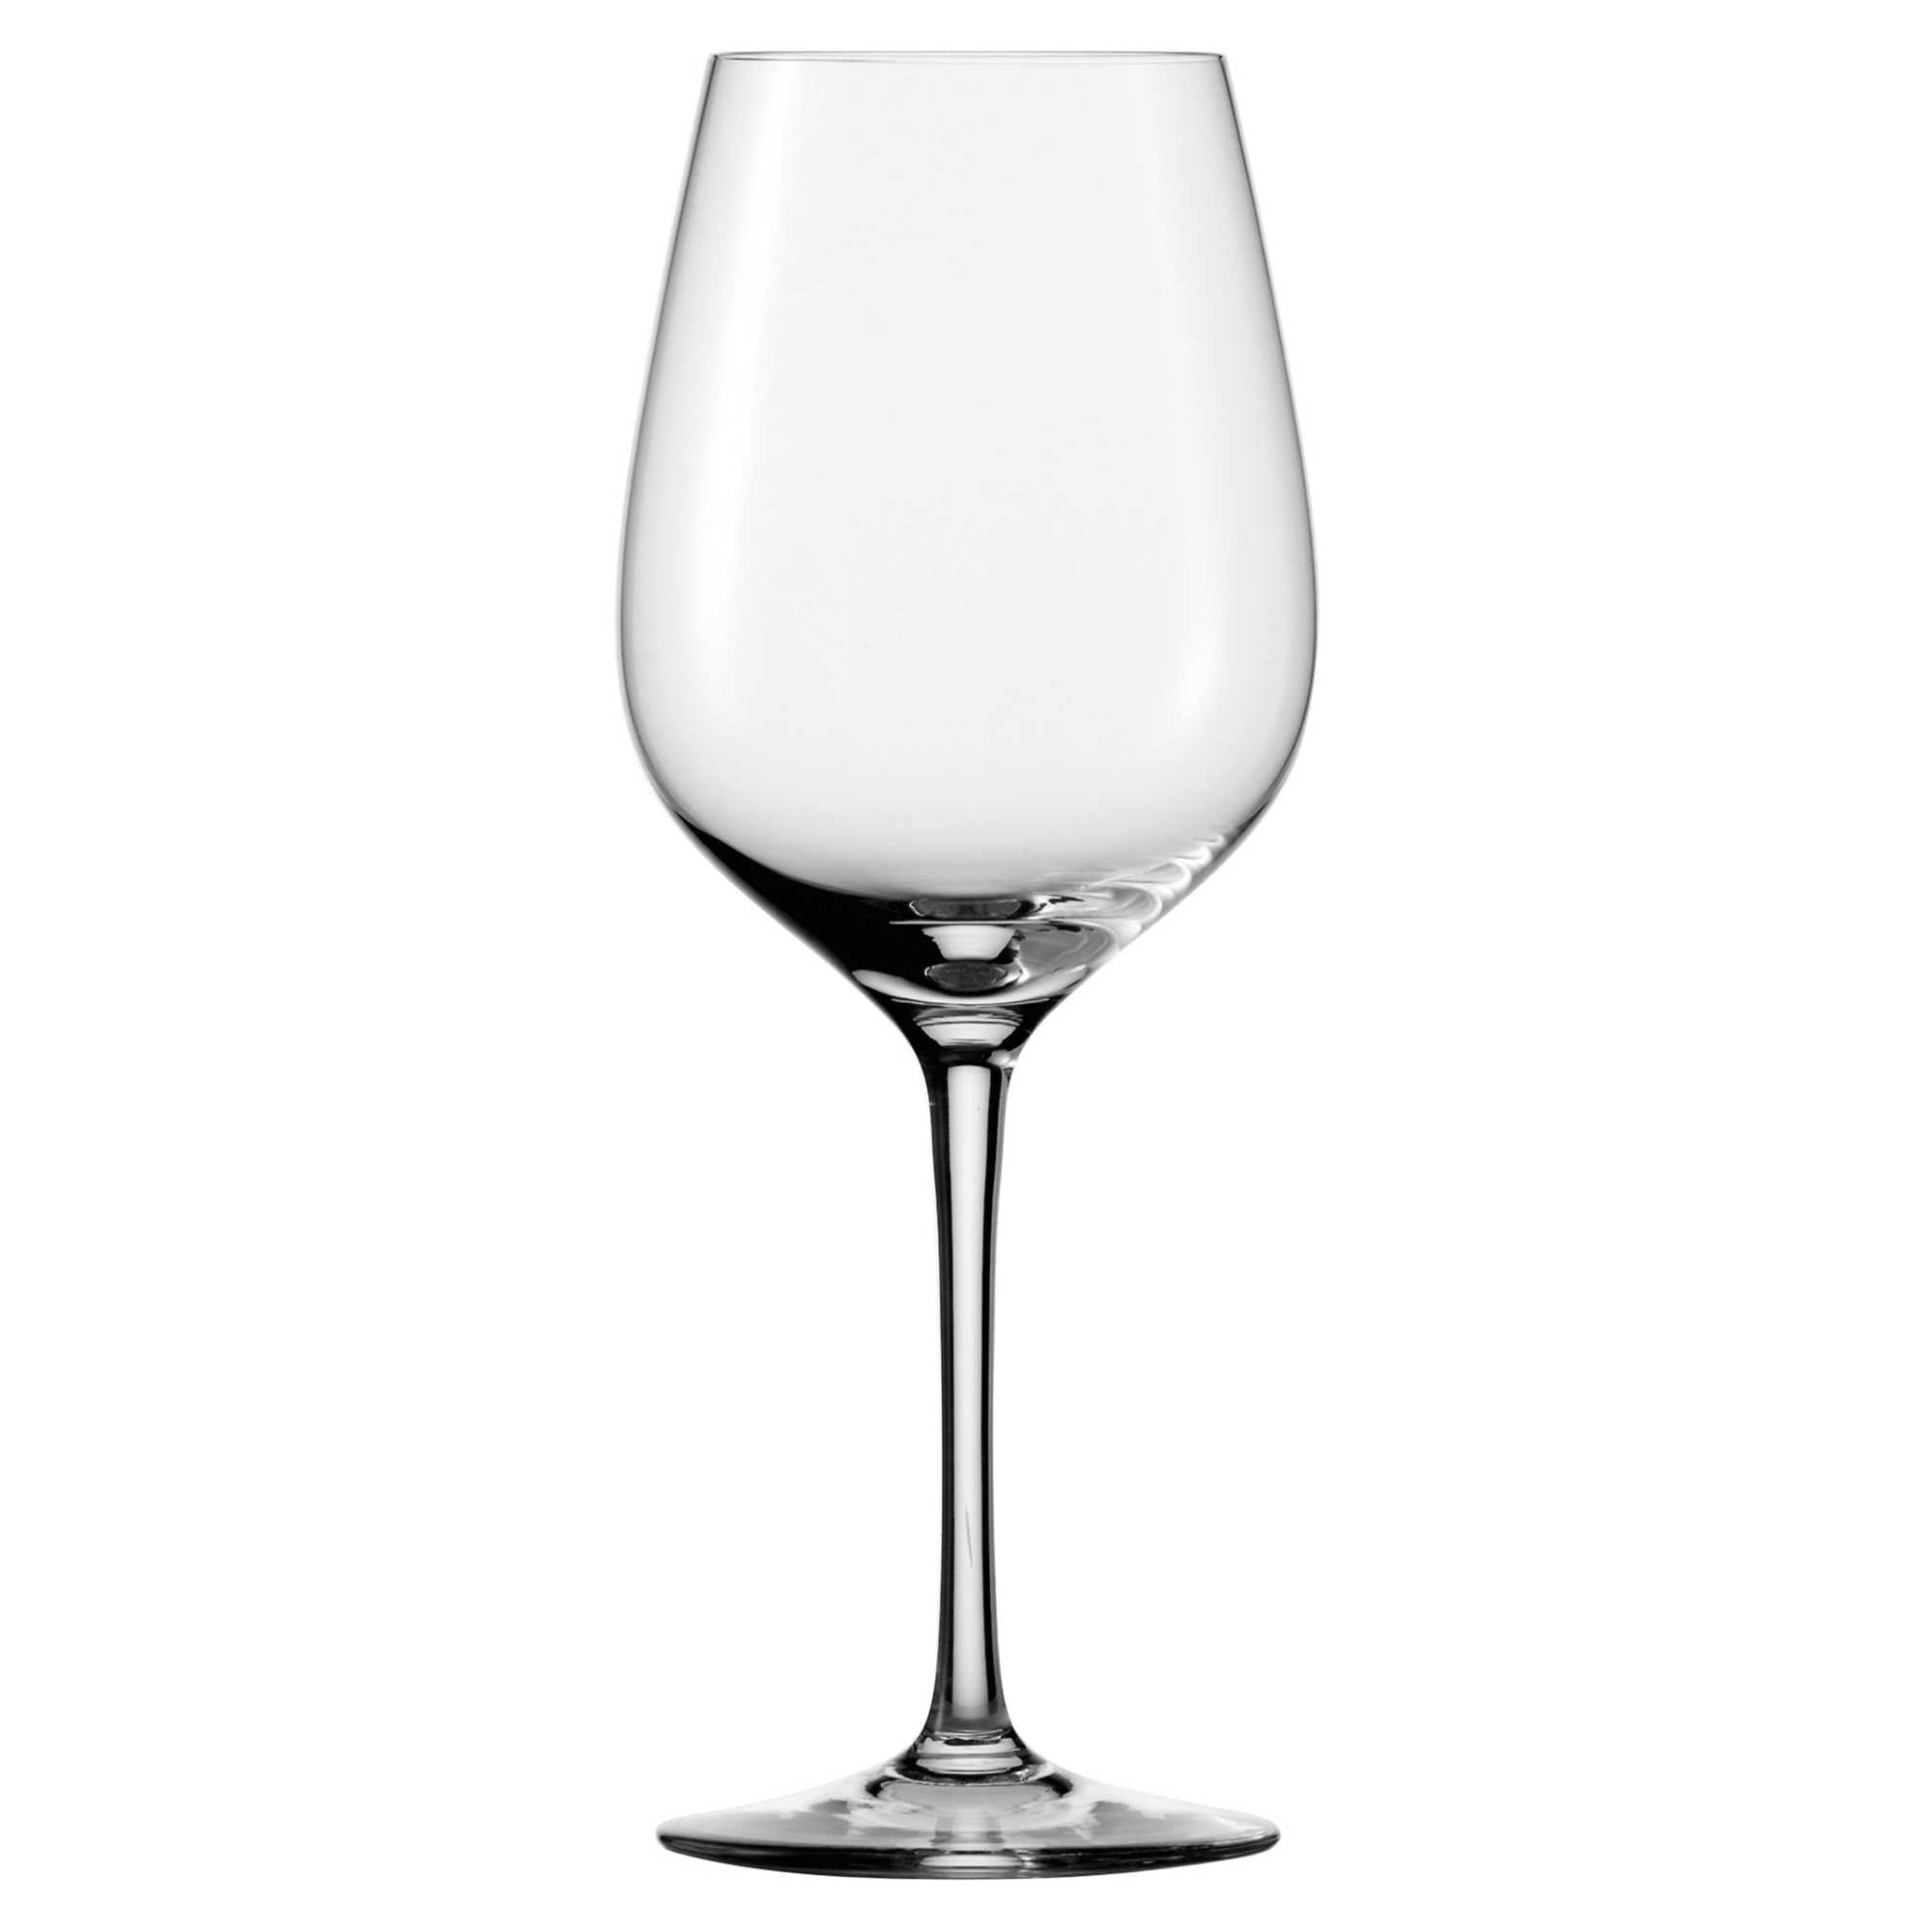 Eisch Superior Sensis Plus Red Wine Glasses (Set of 2)